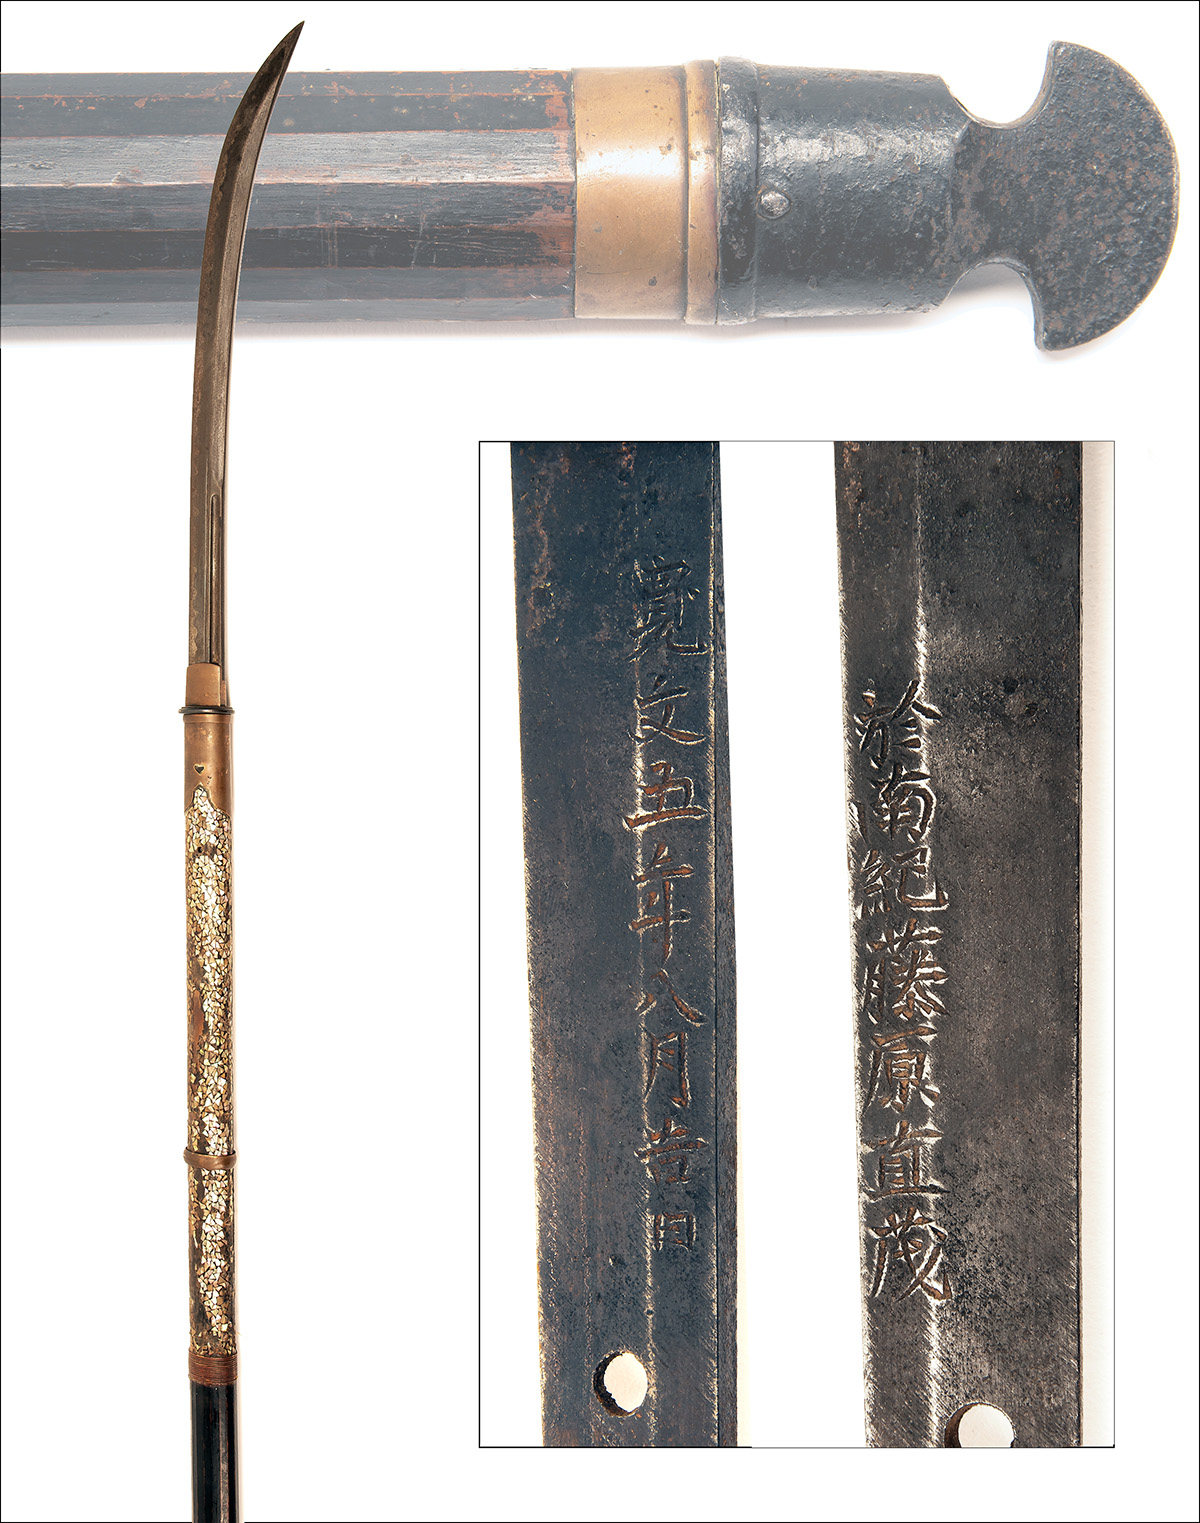 A JAPANESE NAGINATA POLEARM, circa 1800, with curving 18in. blade signed on both sides of the - Image 4 of 4